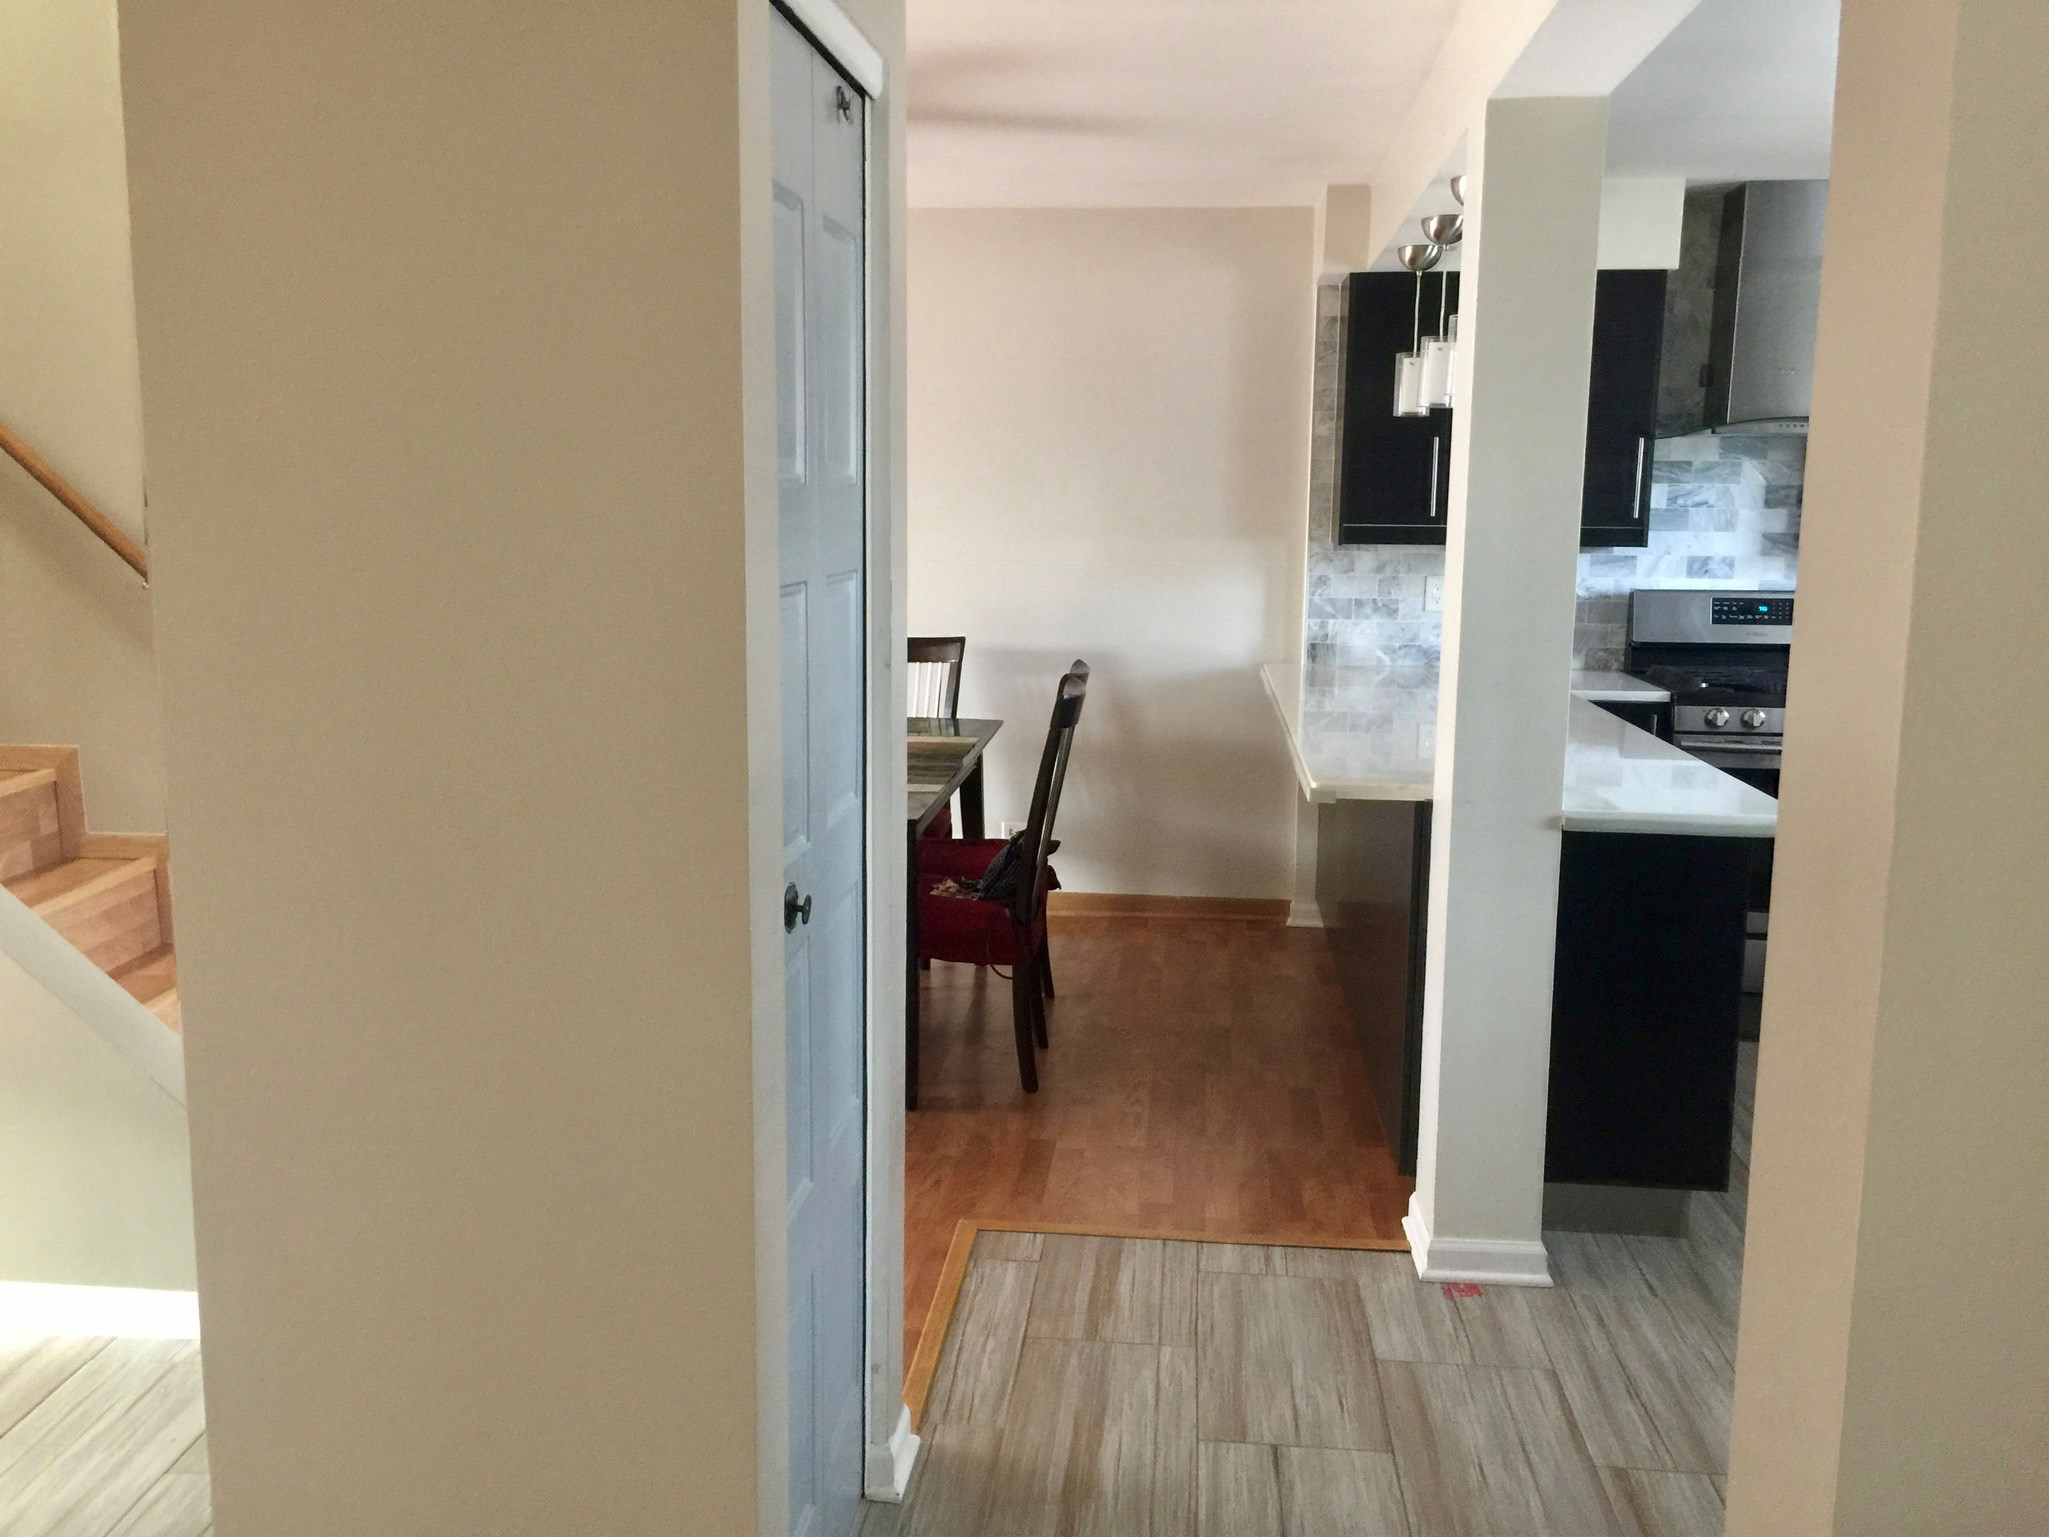 Rooms for Rent in Chicago Apartments Flats mercial Space